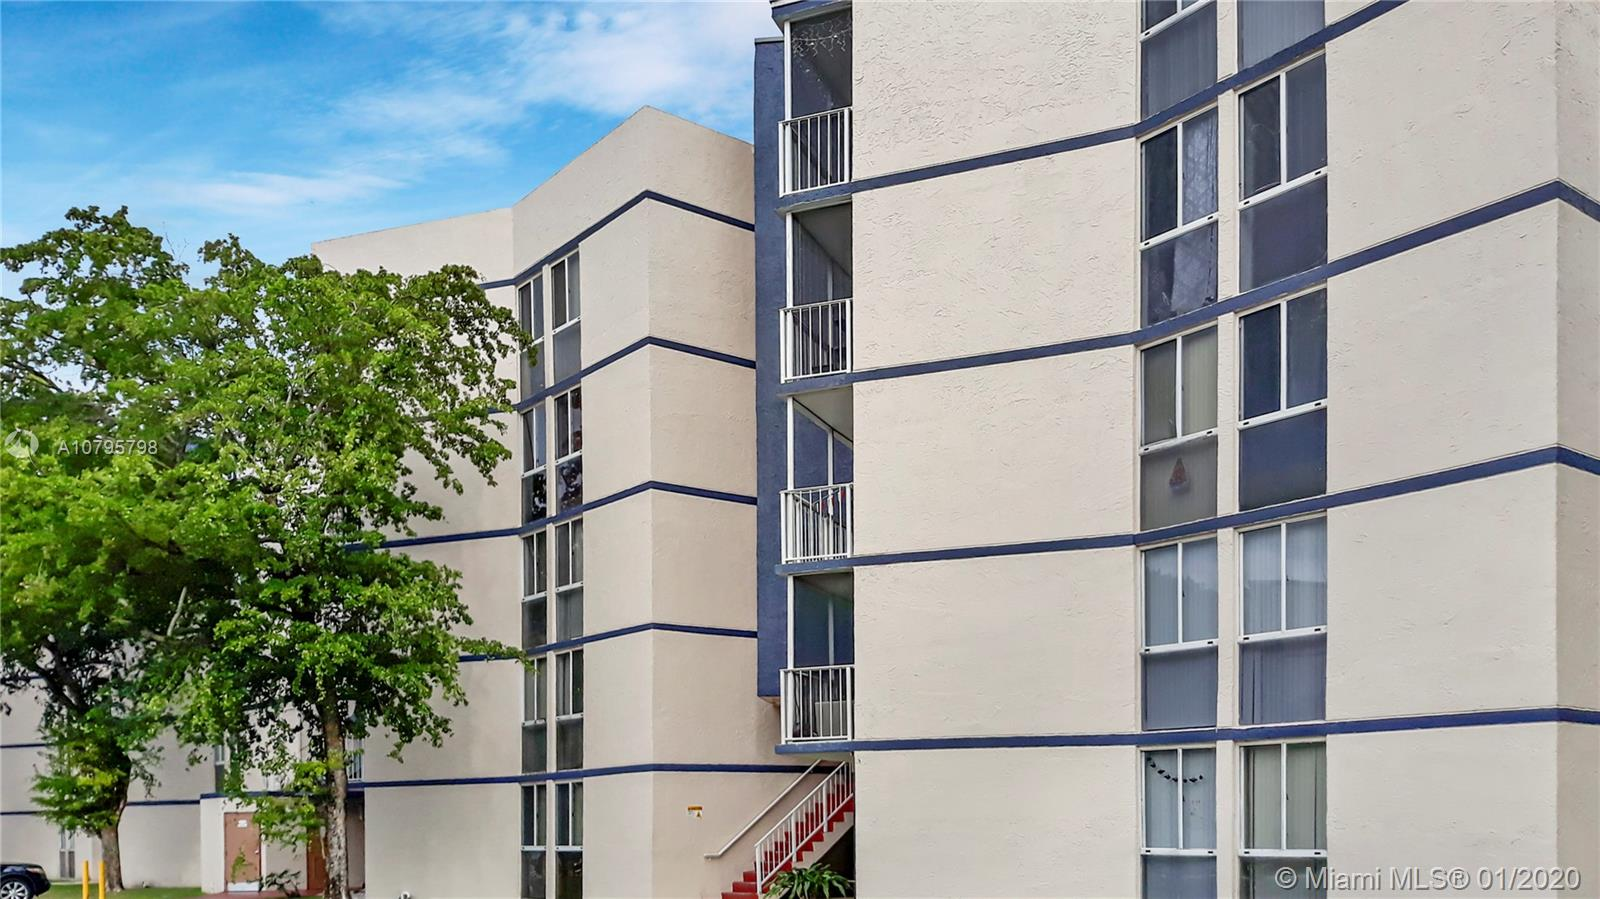 7075 NW 186th St #C308 For Sale A10795798, FL